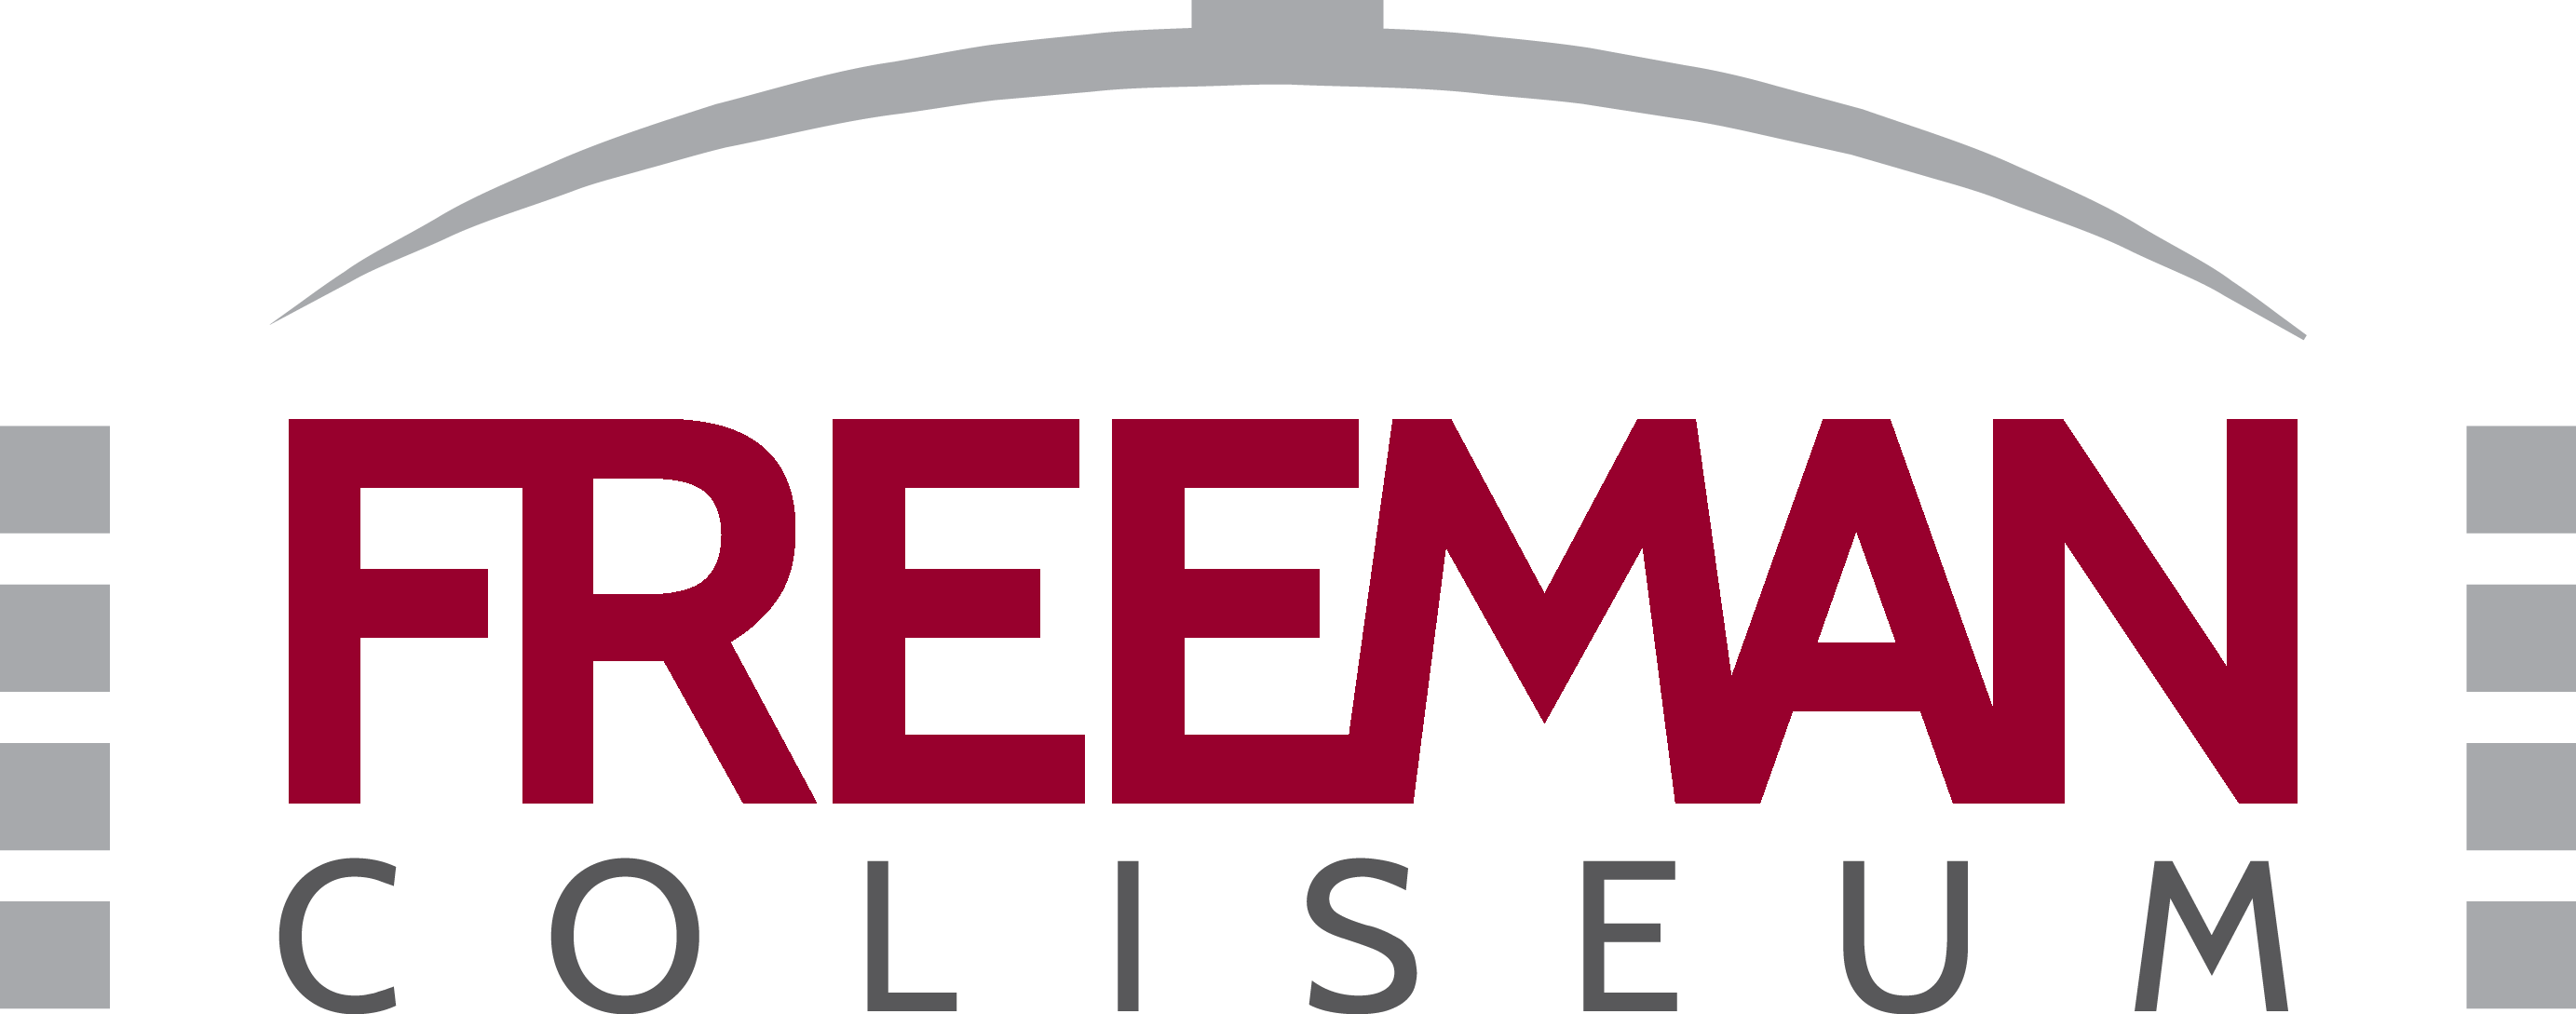 FreemanColiseum_logo_red (002).png